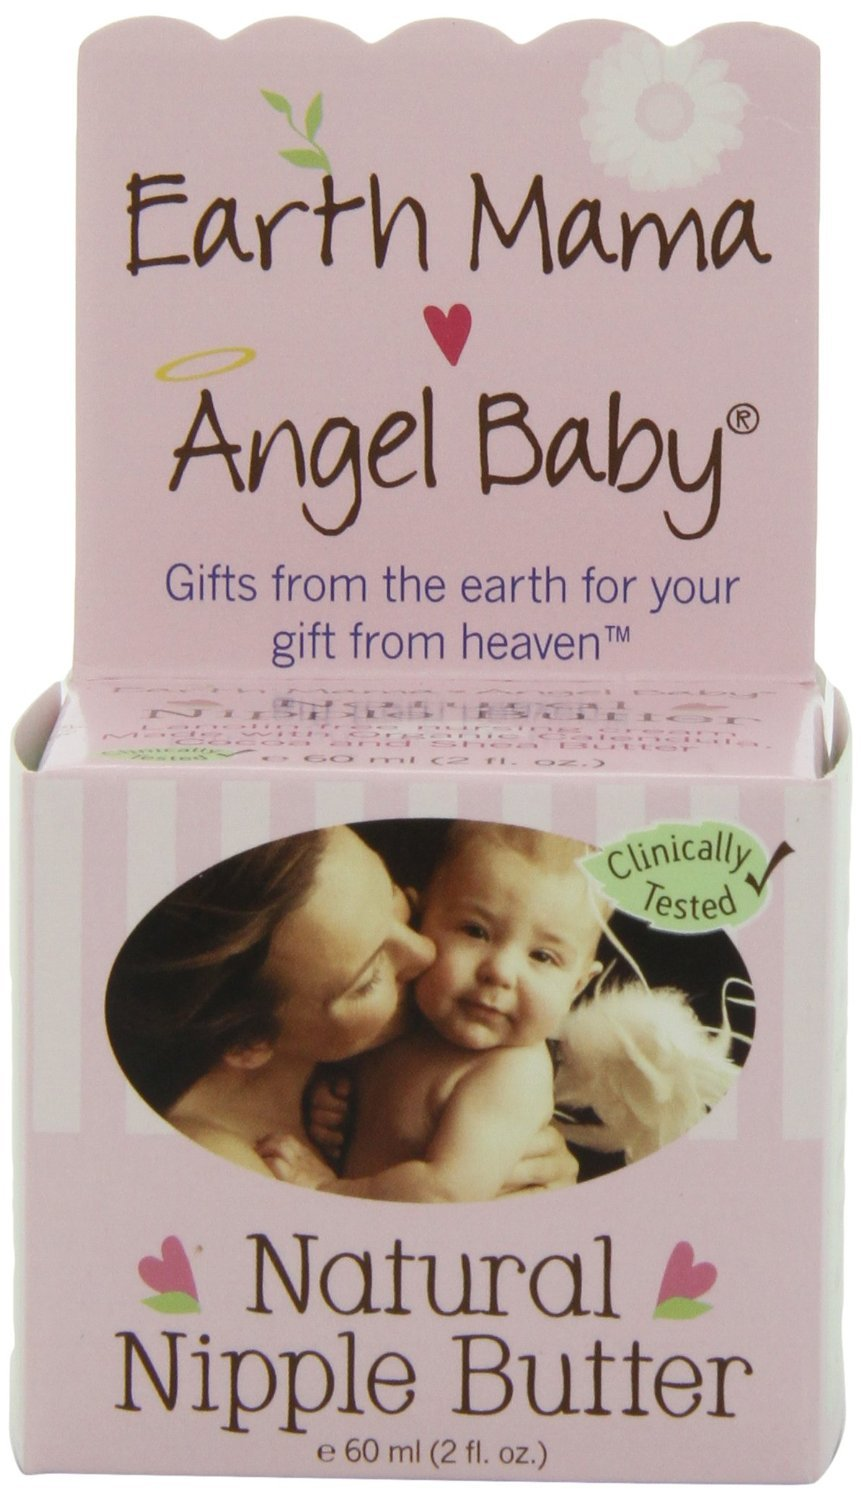 Earth Mama Super Pack Angel Baby Natural Nipple Butter, New Value Pack Size 5 Packs (2 ounce each)